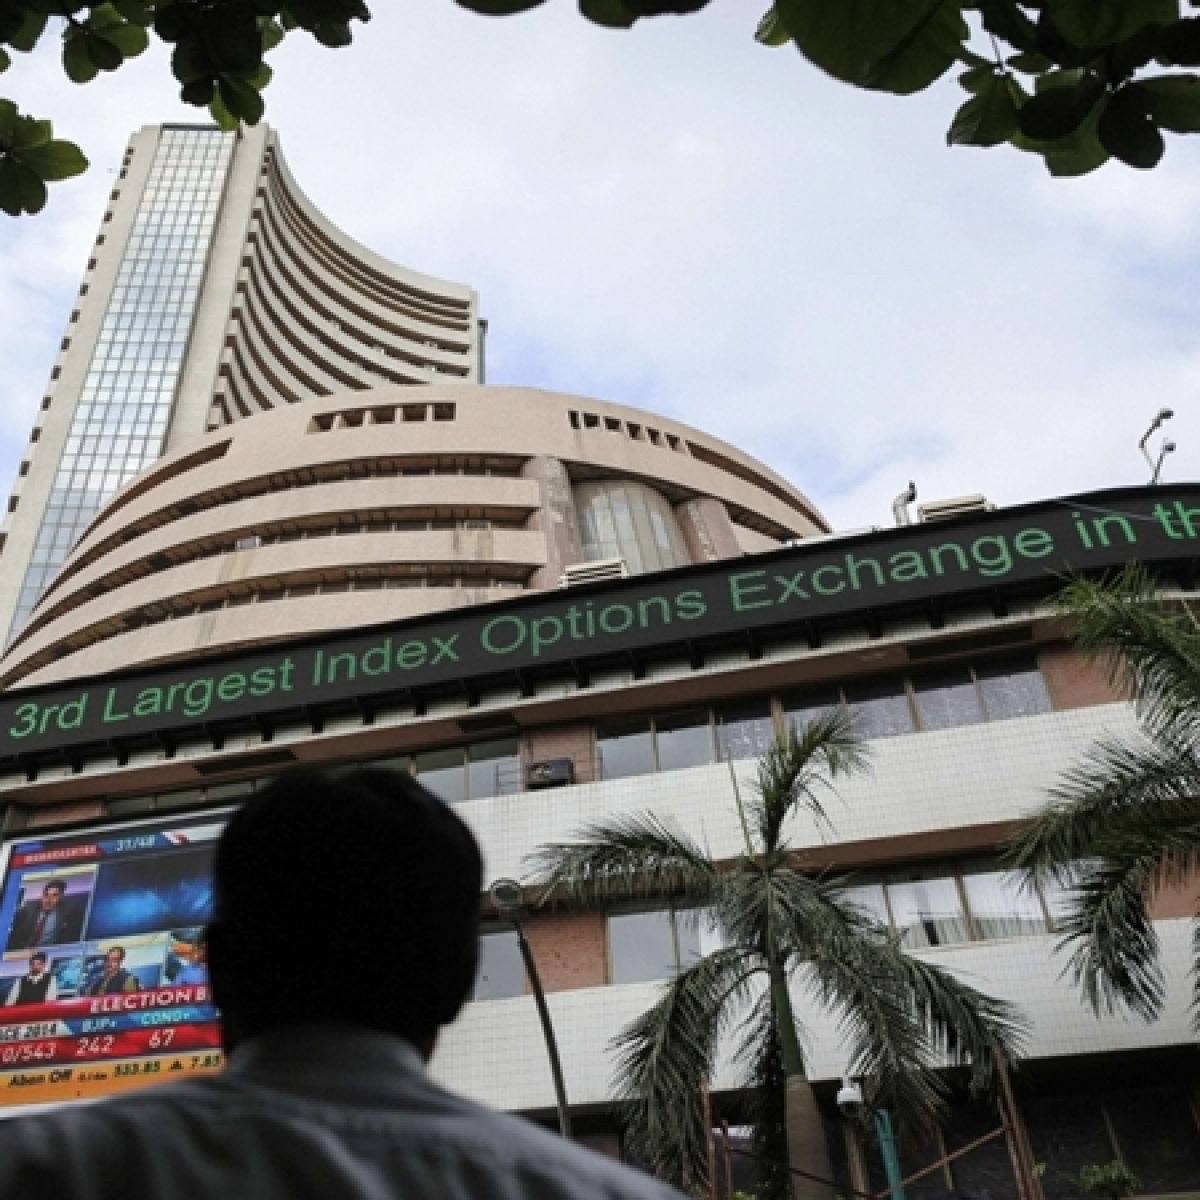 Market Update: Sensex shows recovery signs; jumps 800 points amid coronavirus outbreak